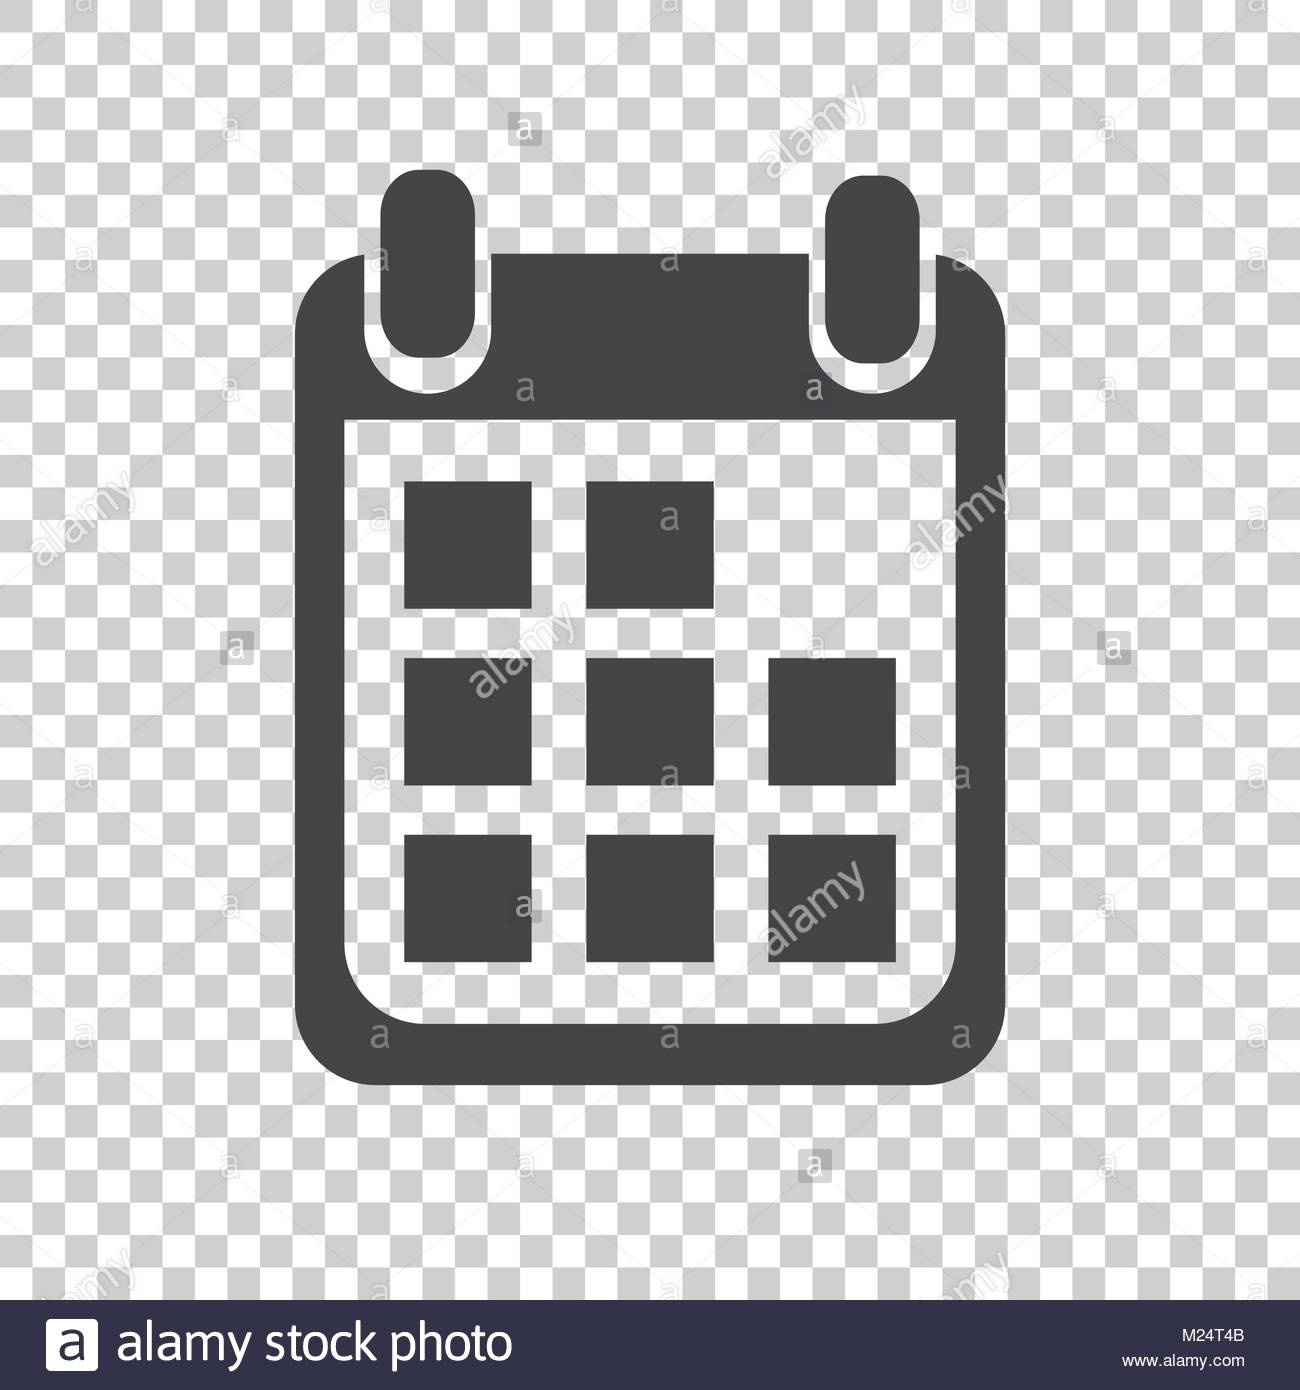 Calendar Icon On Isolated Background, Vector Illustration. Flat_Calendar Icon For Website